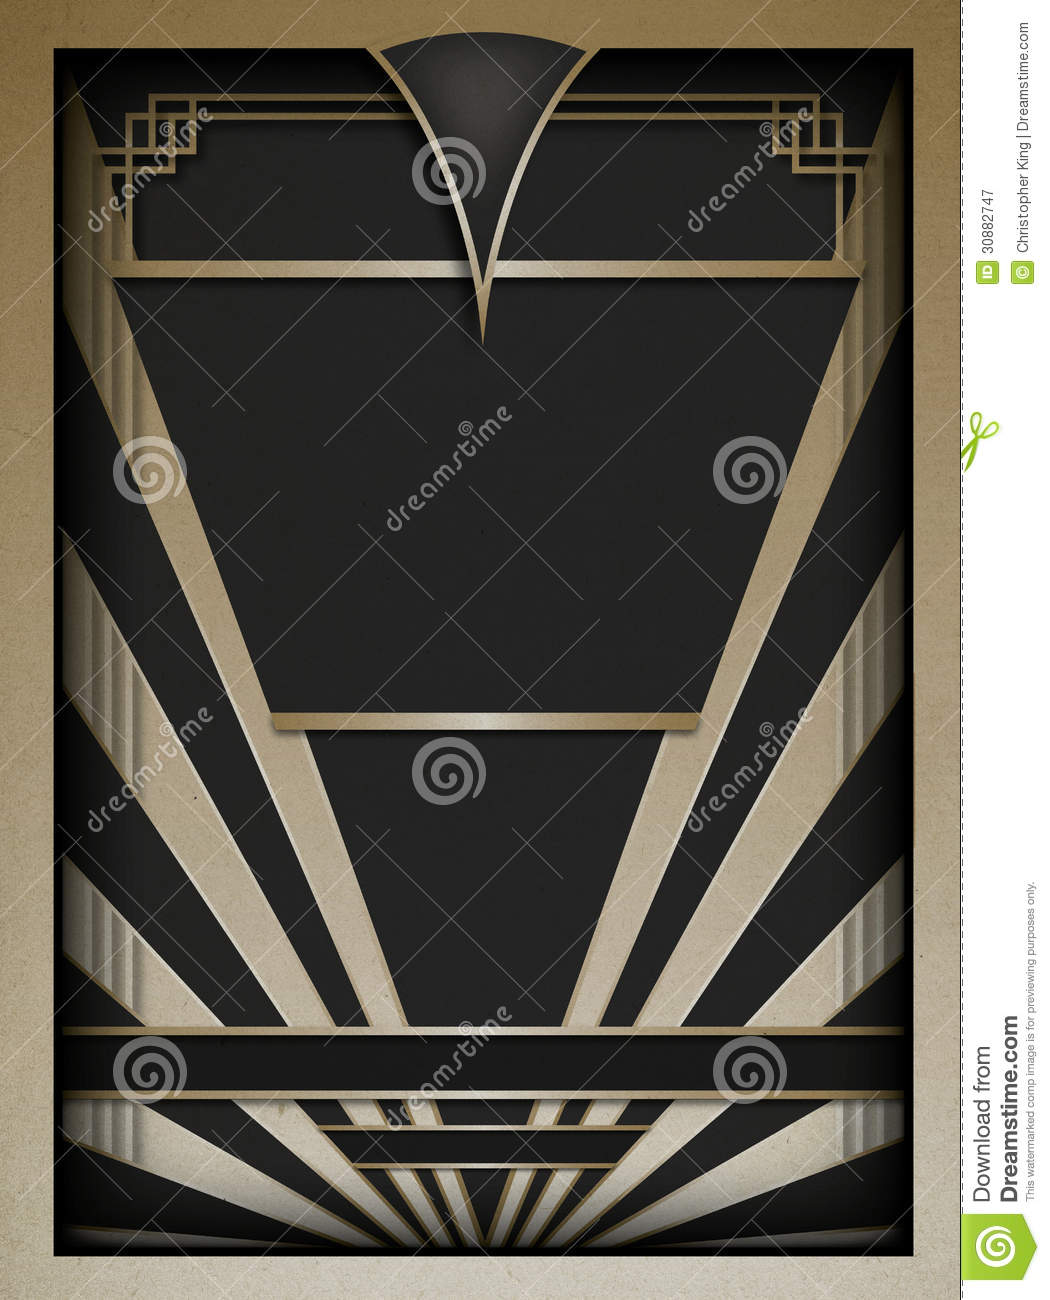 art deco background and frame stock vector image 30882747. Black Bedroom Furniture Sets. Home Design Ideas